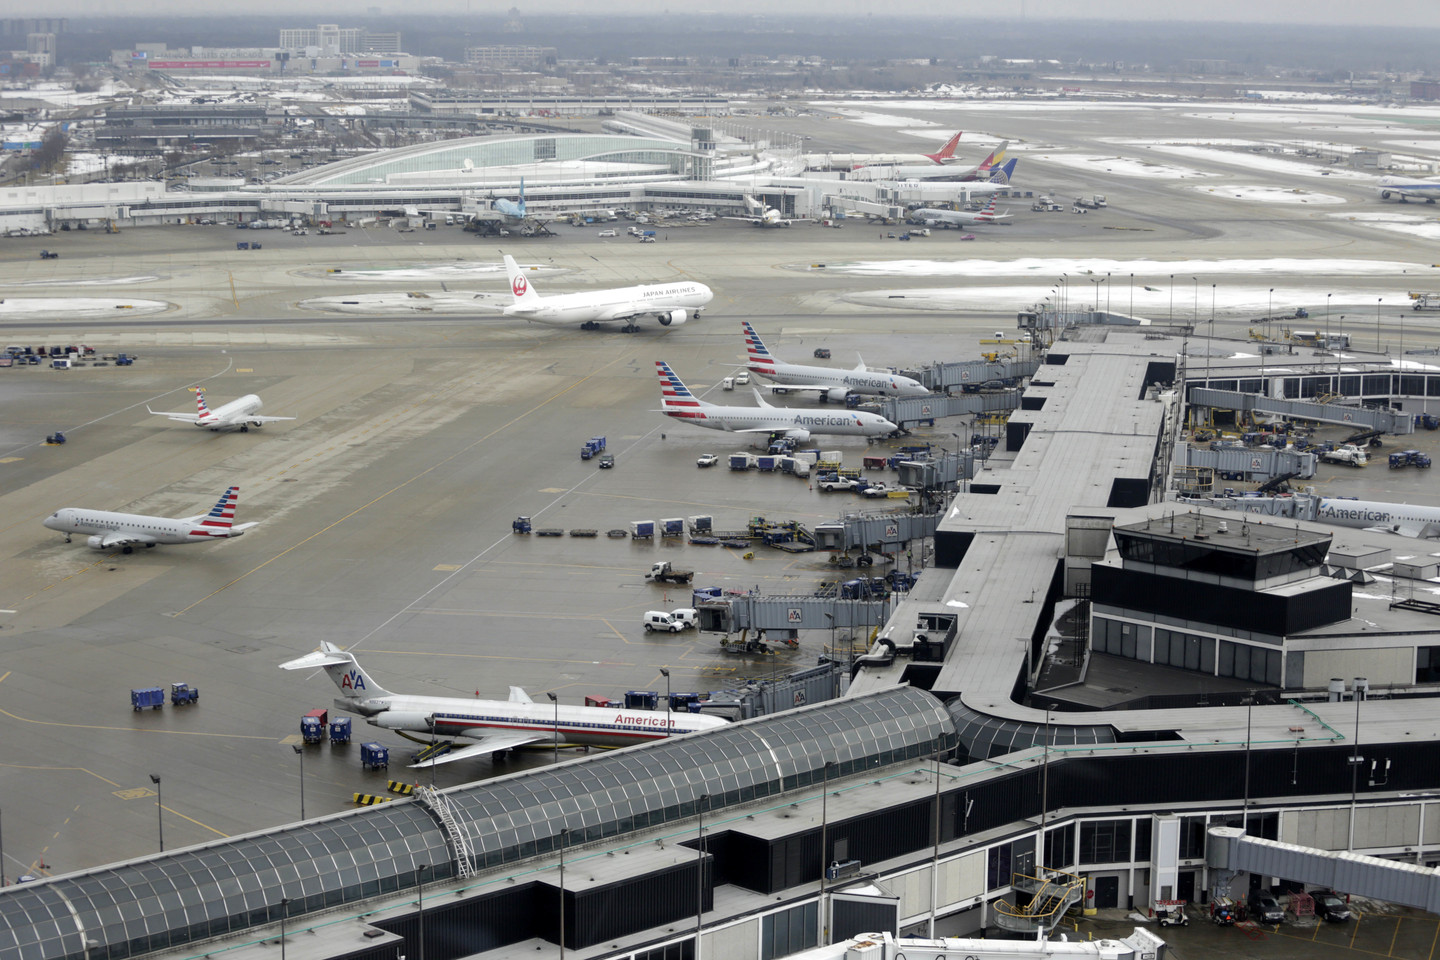 10 Airports Named After Heroes